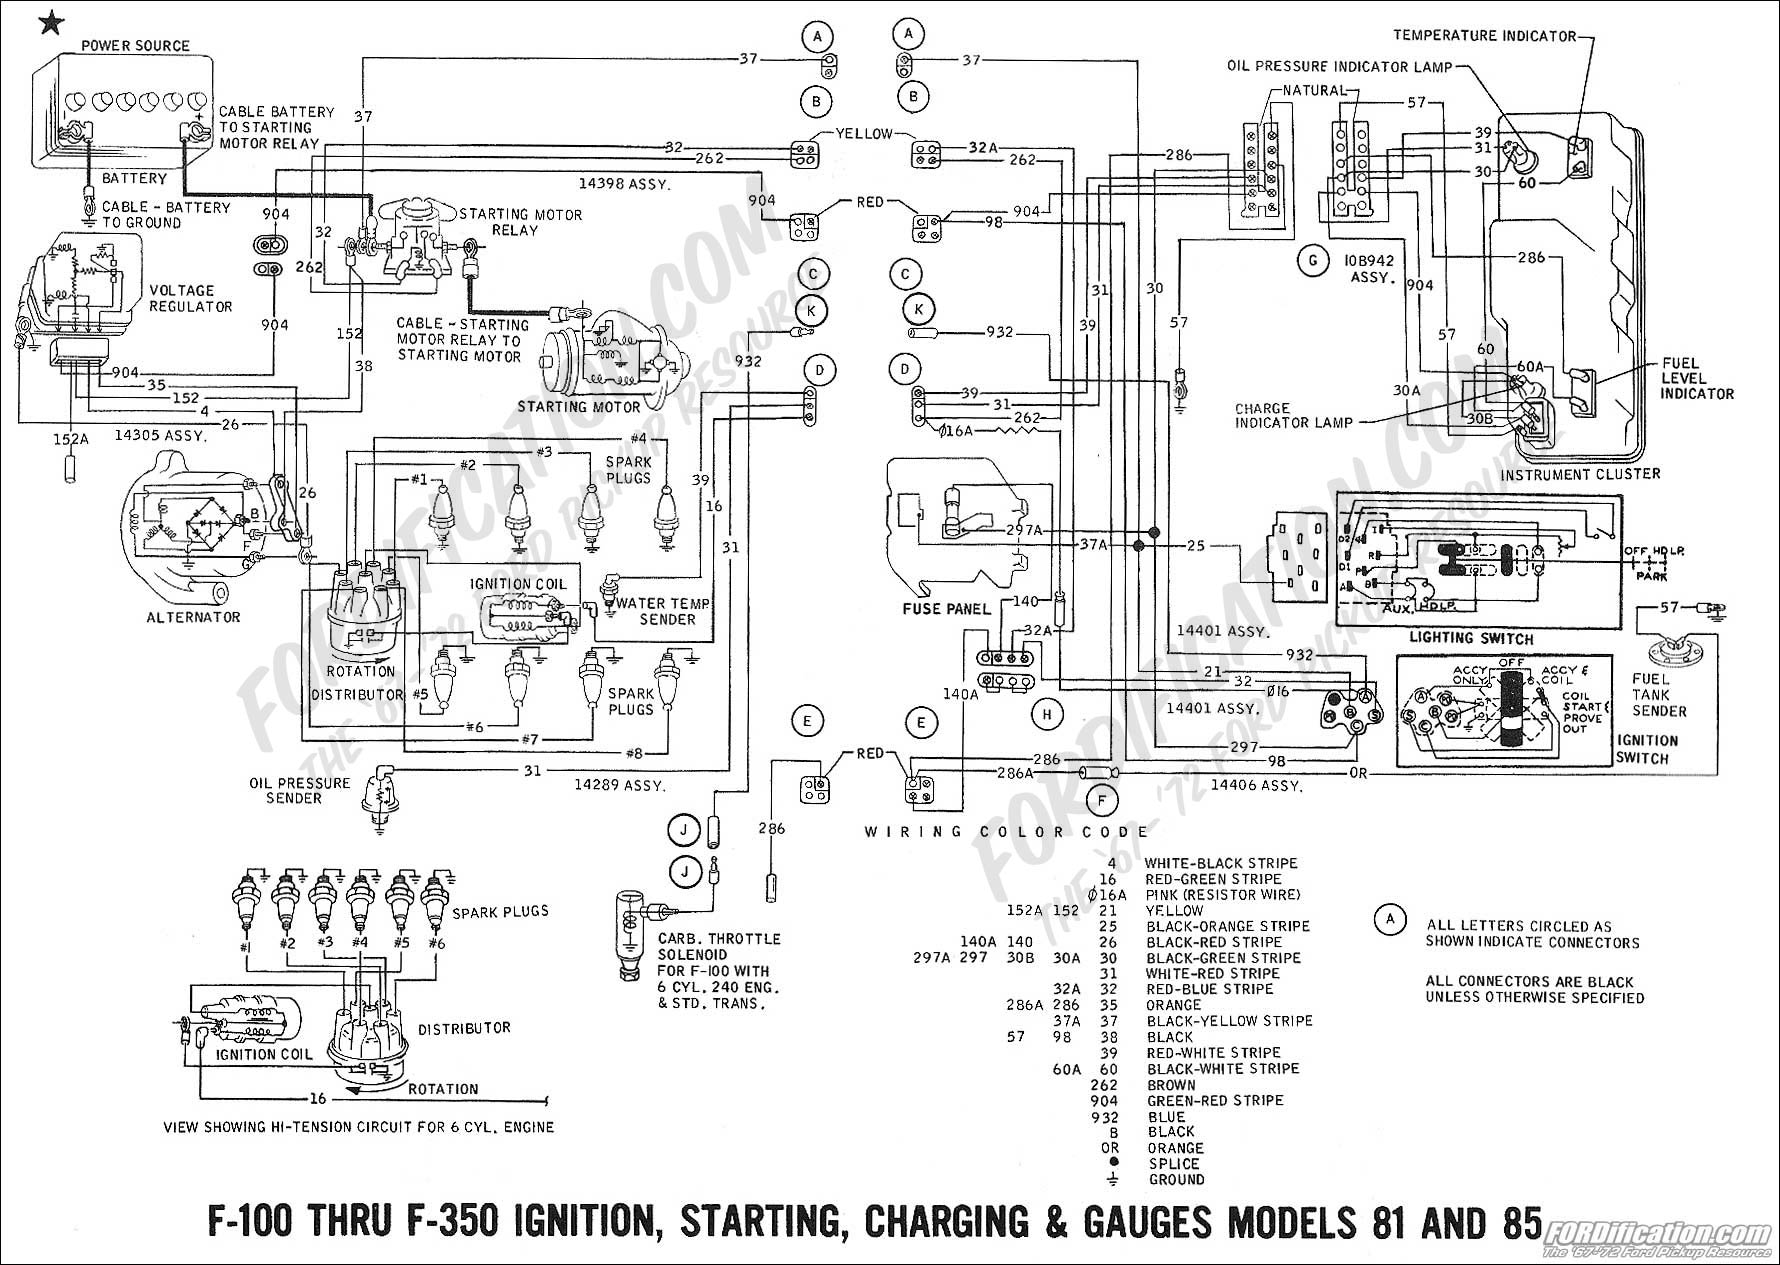 350 Engine Wiring Diagram Free For You Alt Honda 1989 Ford E Dash Simple Schema Rh 24 Aspire Atlantis De Motor